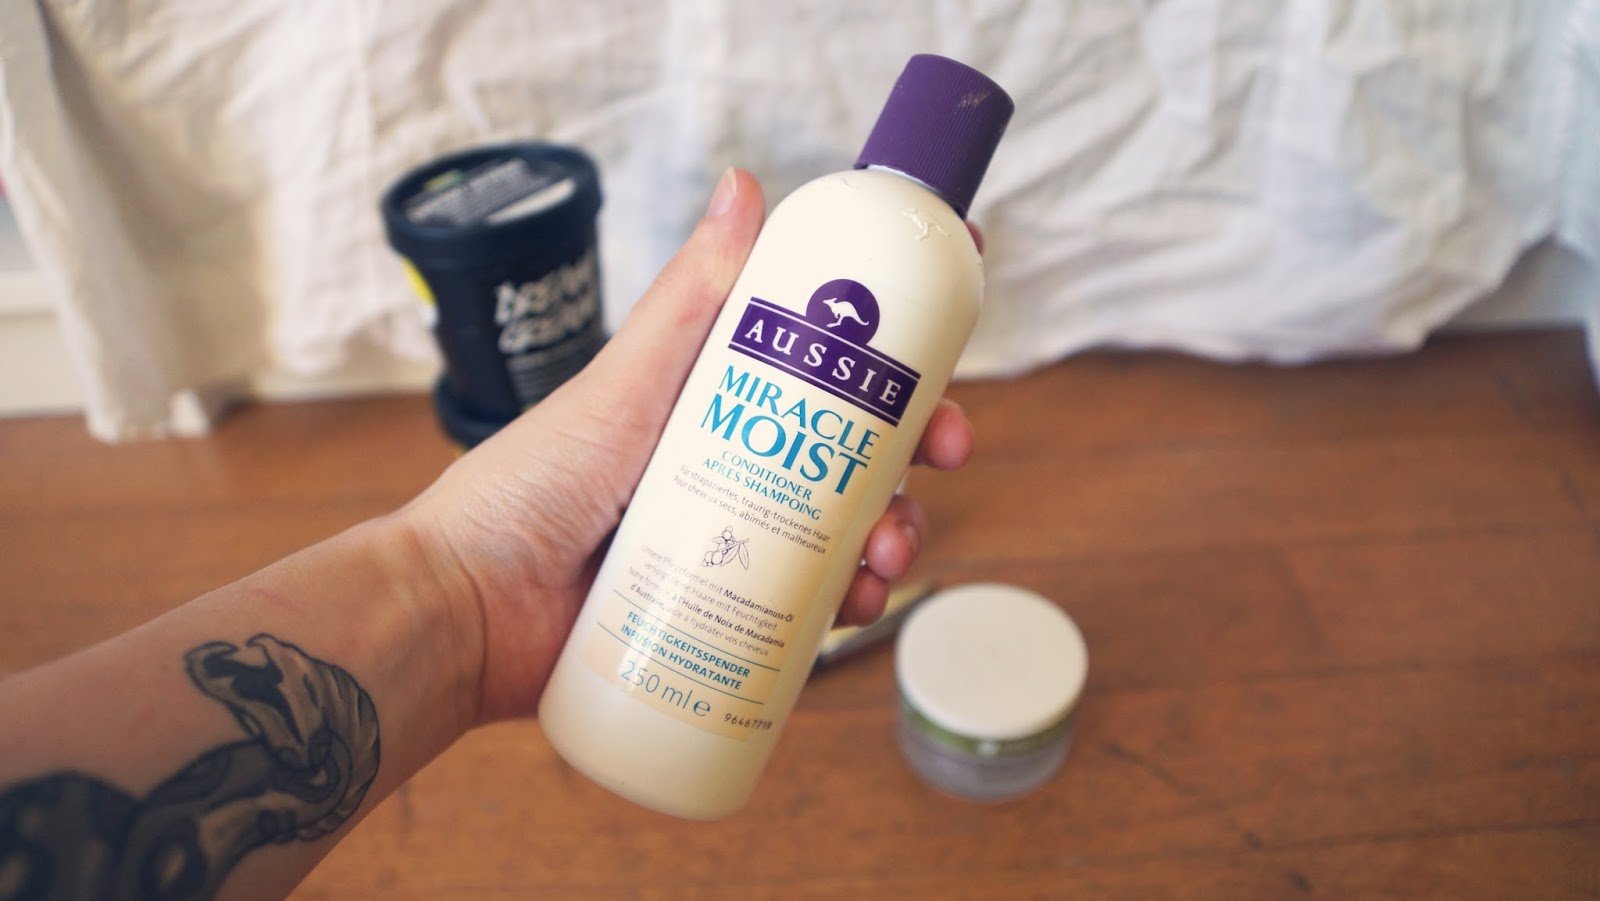 Aussie Miracle Moist Conditioner Review